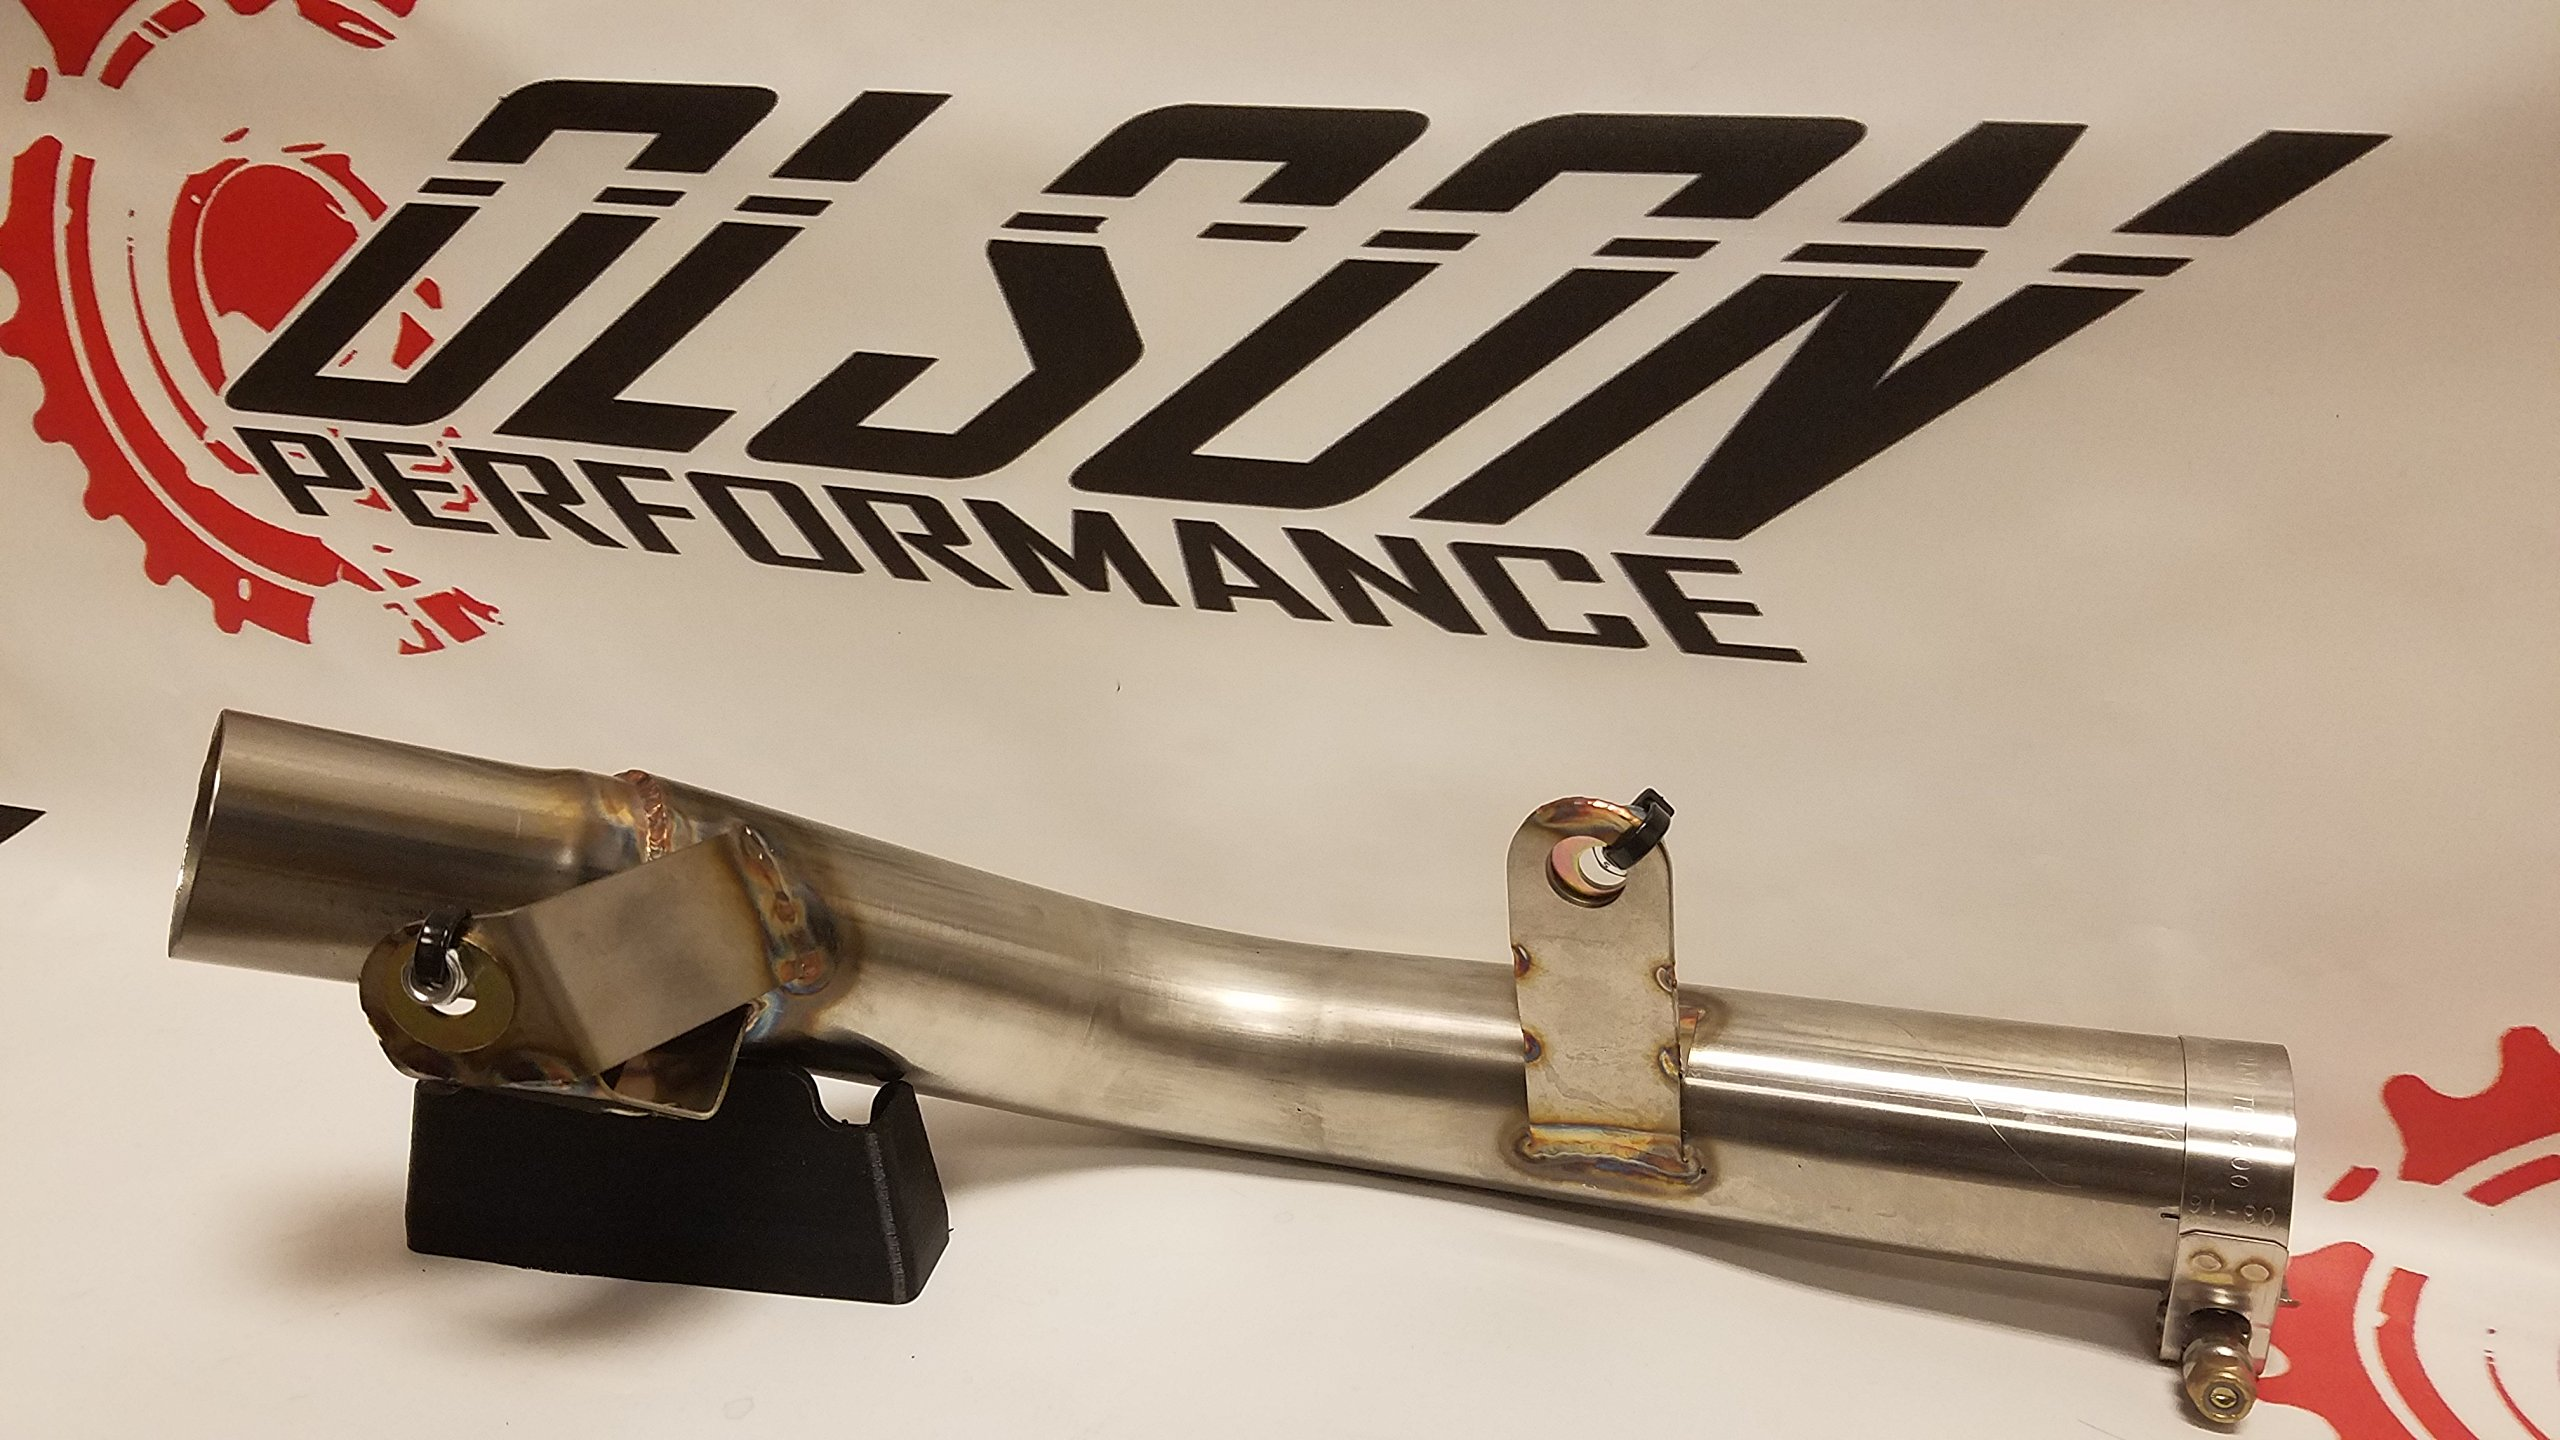 Suzuki GSXR 600/750 2011,2012,2013,2014 Cat Eliminator Mid pipe Link Pipe Decat midpipe by OLSON PERFORMANCE